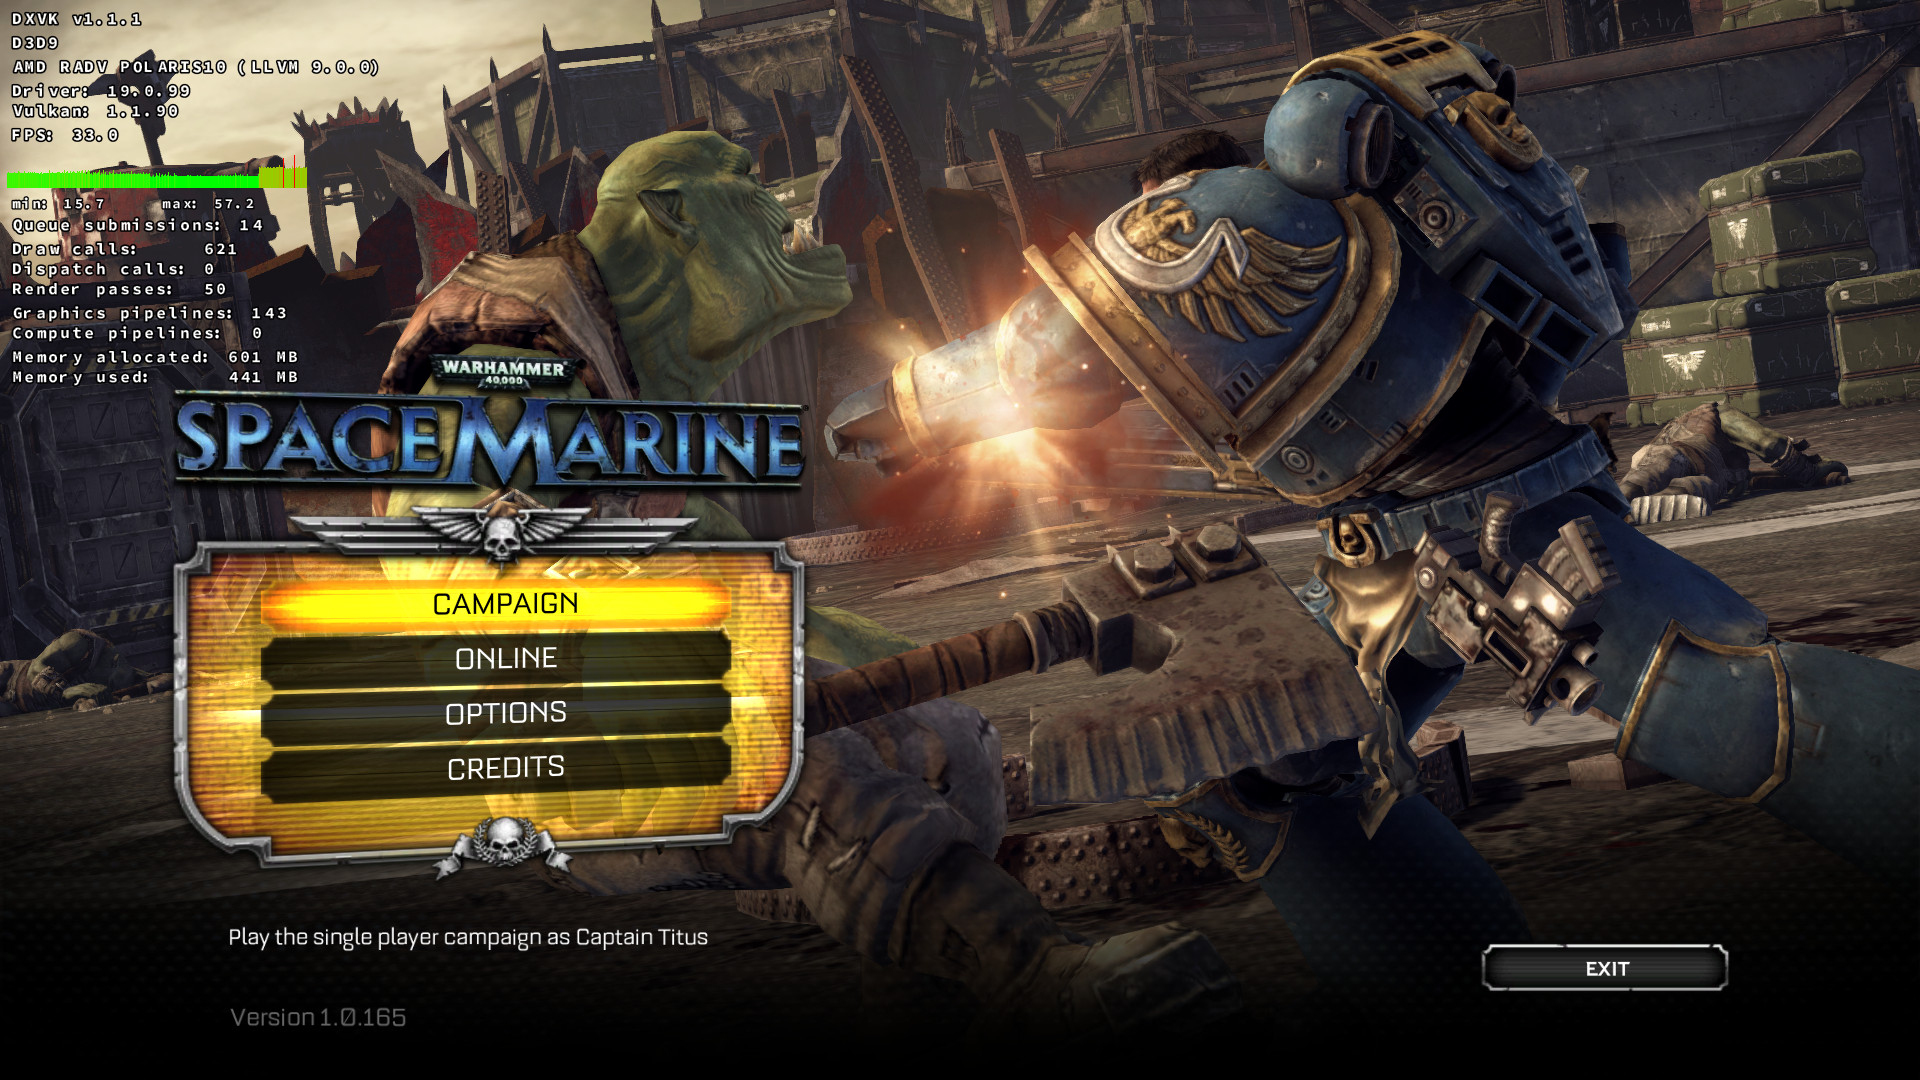 Warhammer 40K Space Marine doesn't render 3D models · Issue #18